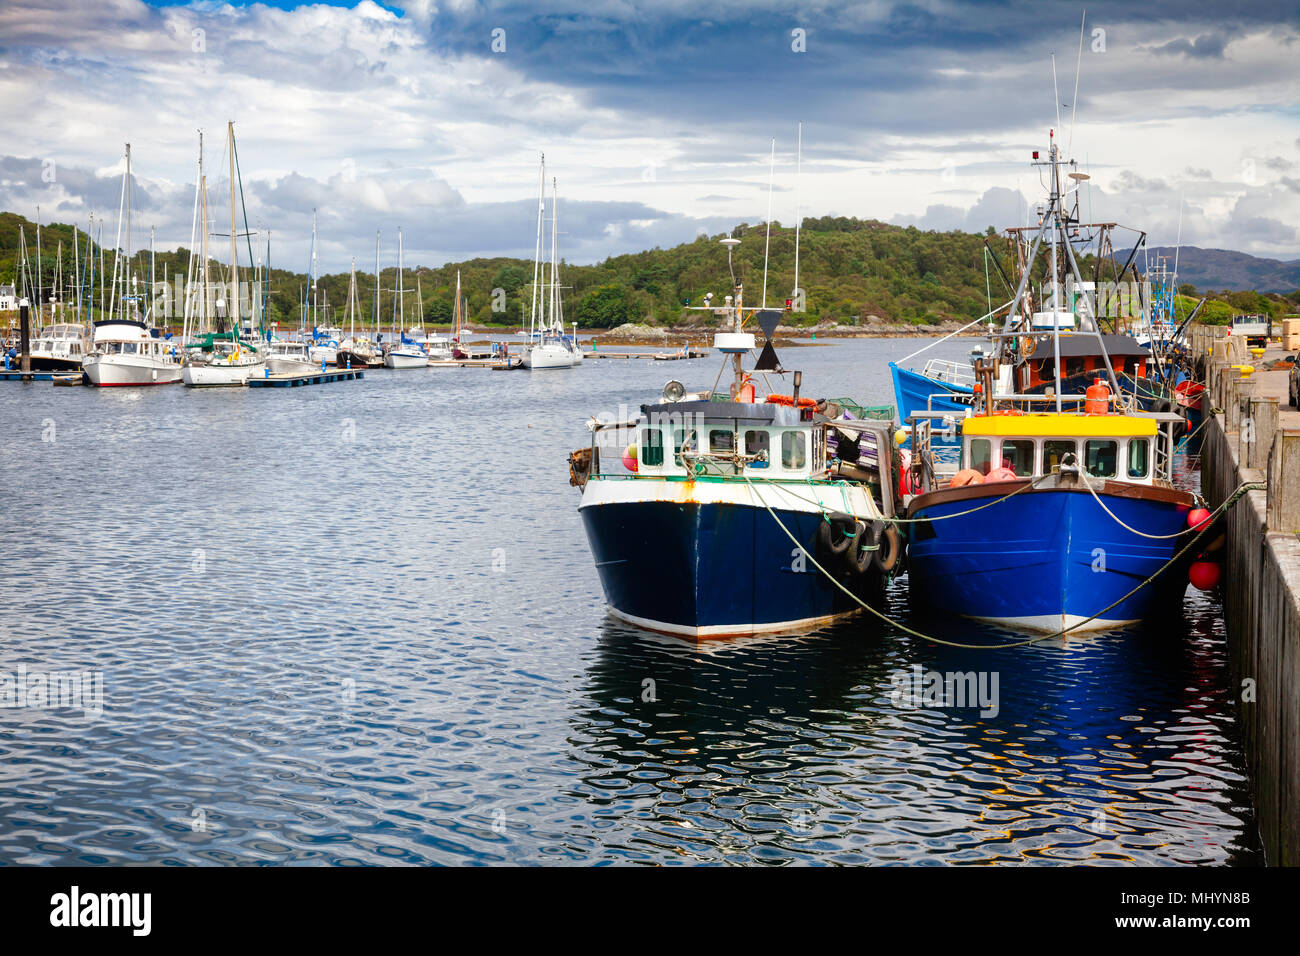 Fishing boats tied up at Tarbert, a small fishing town and ferry terminal in Argyll and Bute, Scotland, UK Stock Photo